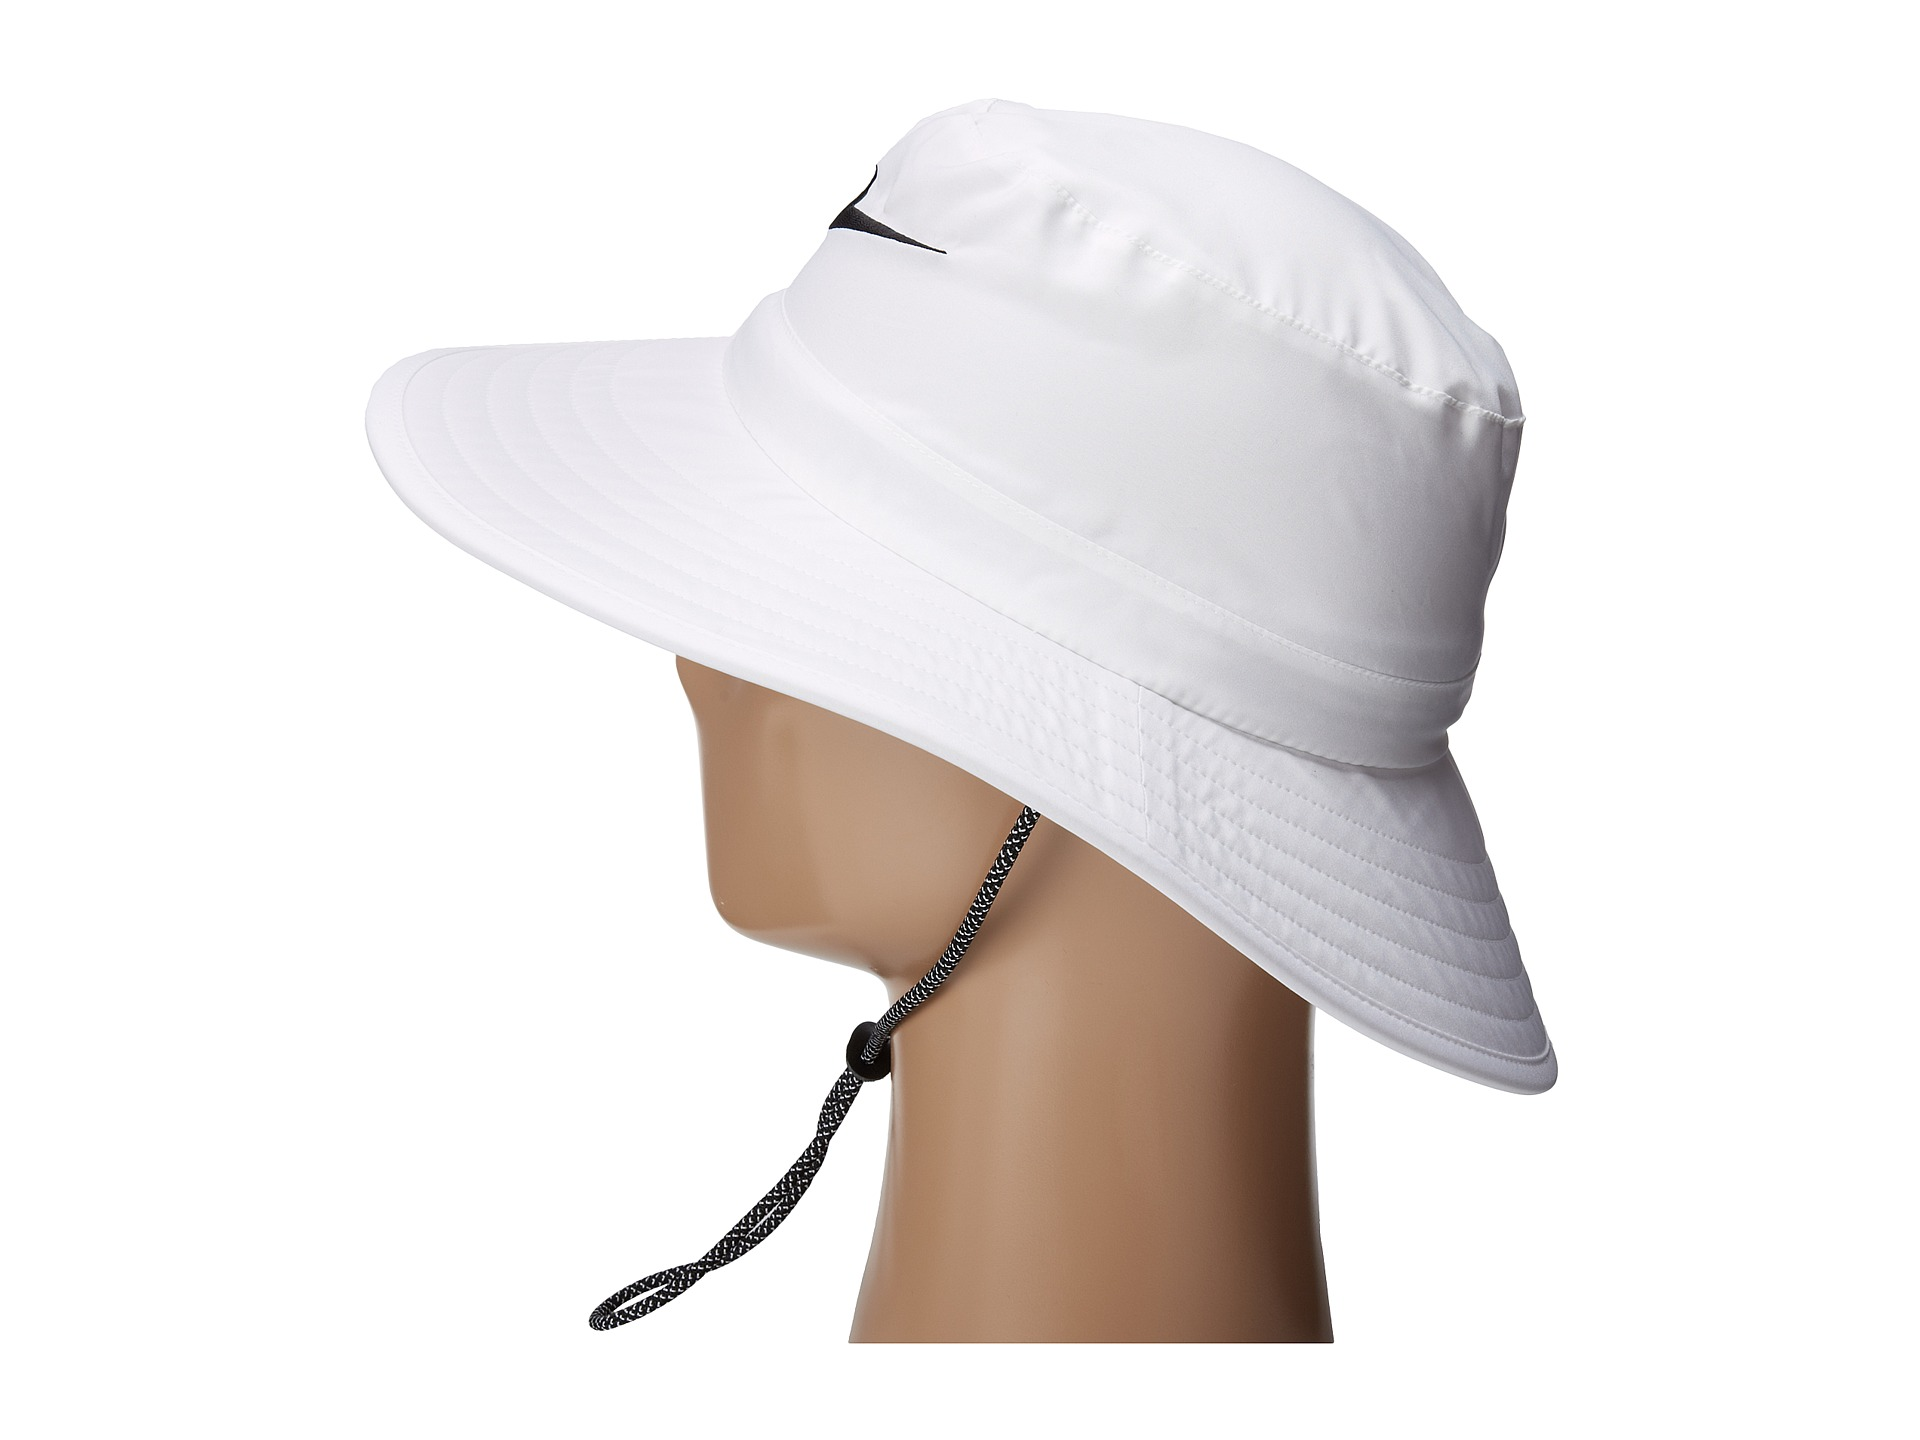 Nike Bucket Hat With String - Hat HD Image Ukjugs.Org c465360ad63